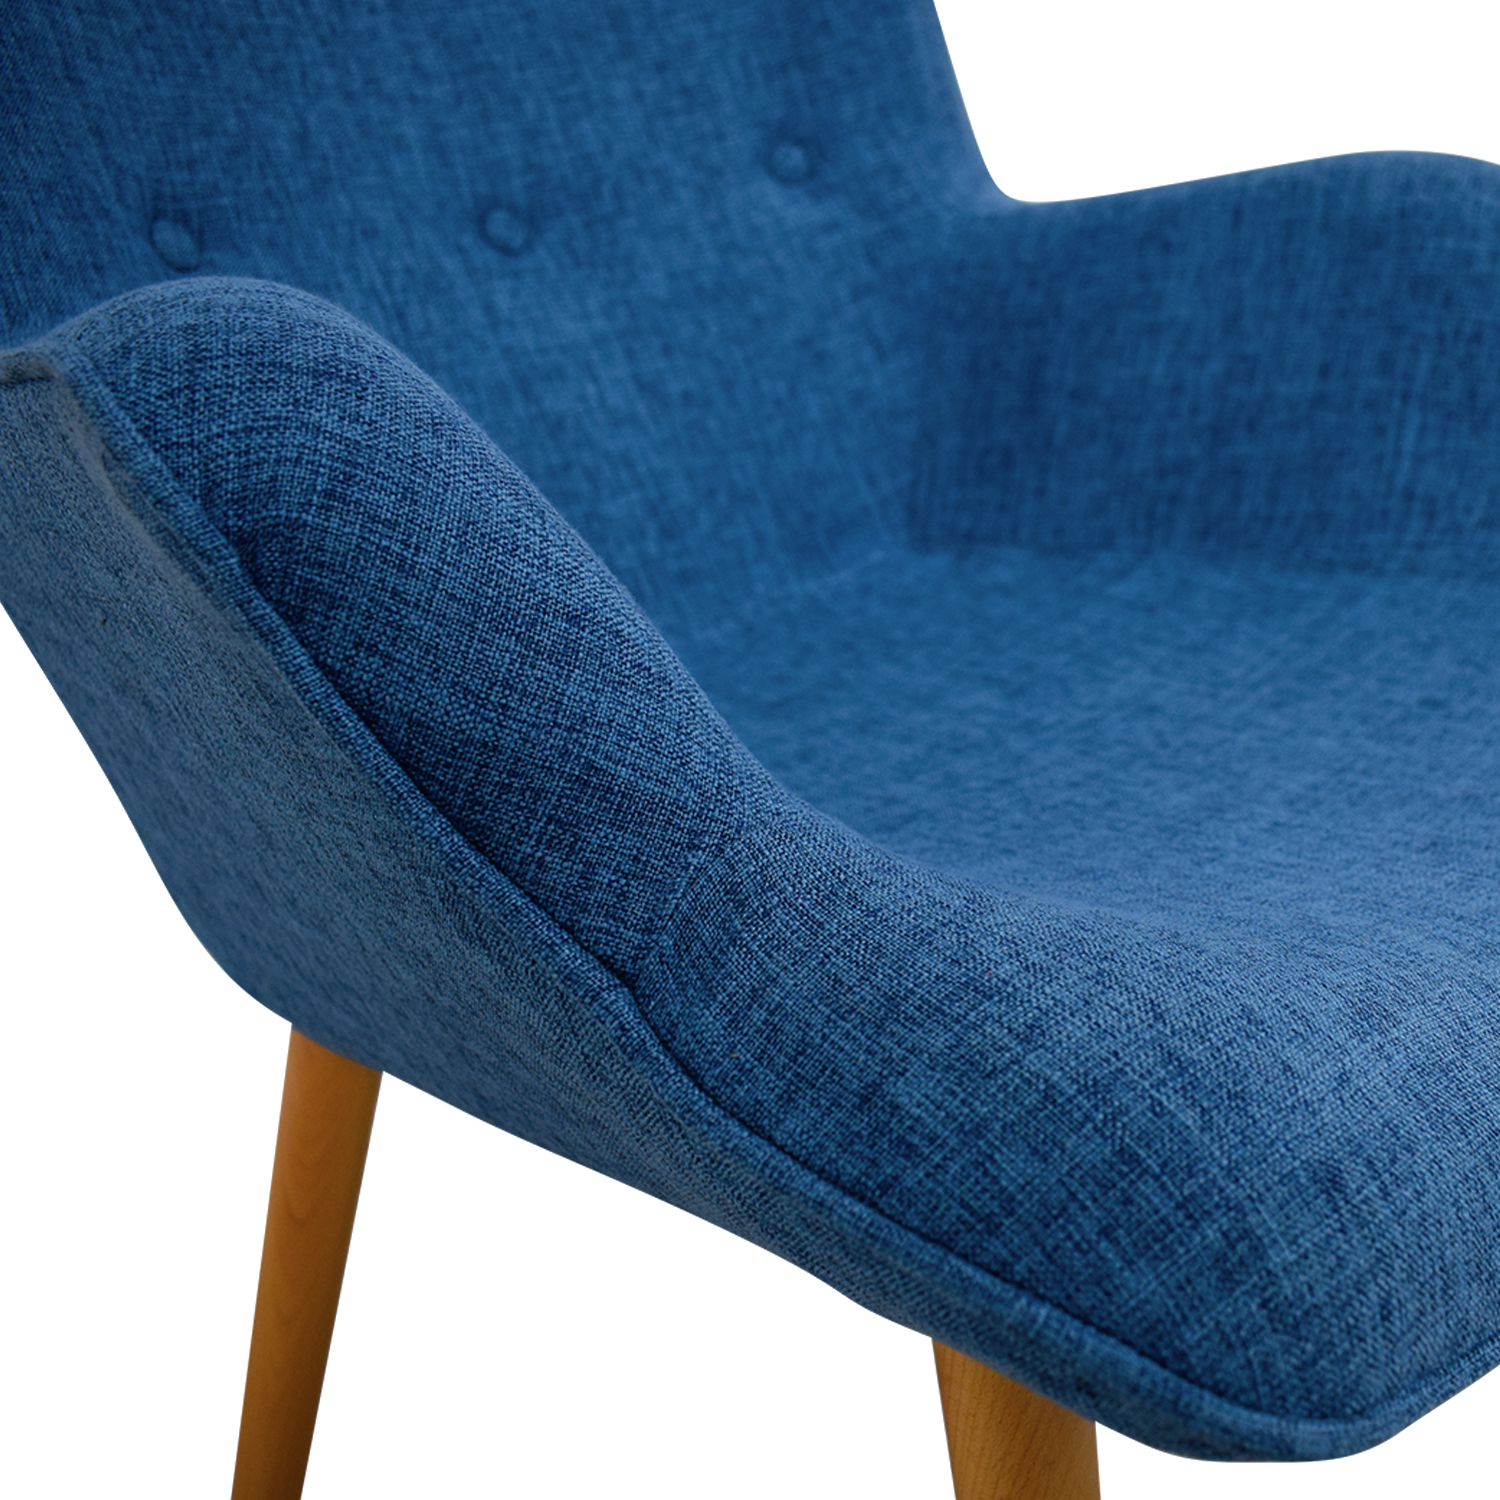 ... Christopher Knight Home Christopher Knight Home Fayola Blue Tufted  Accent Chair Price ...